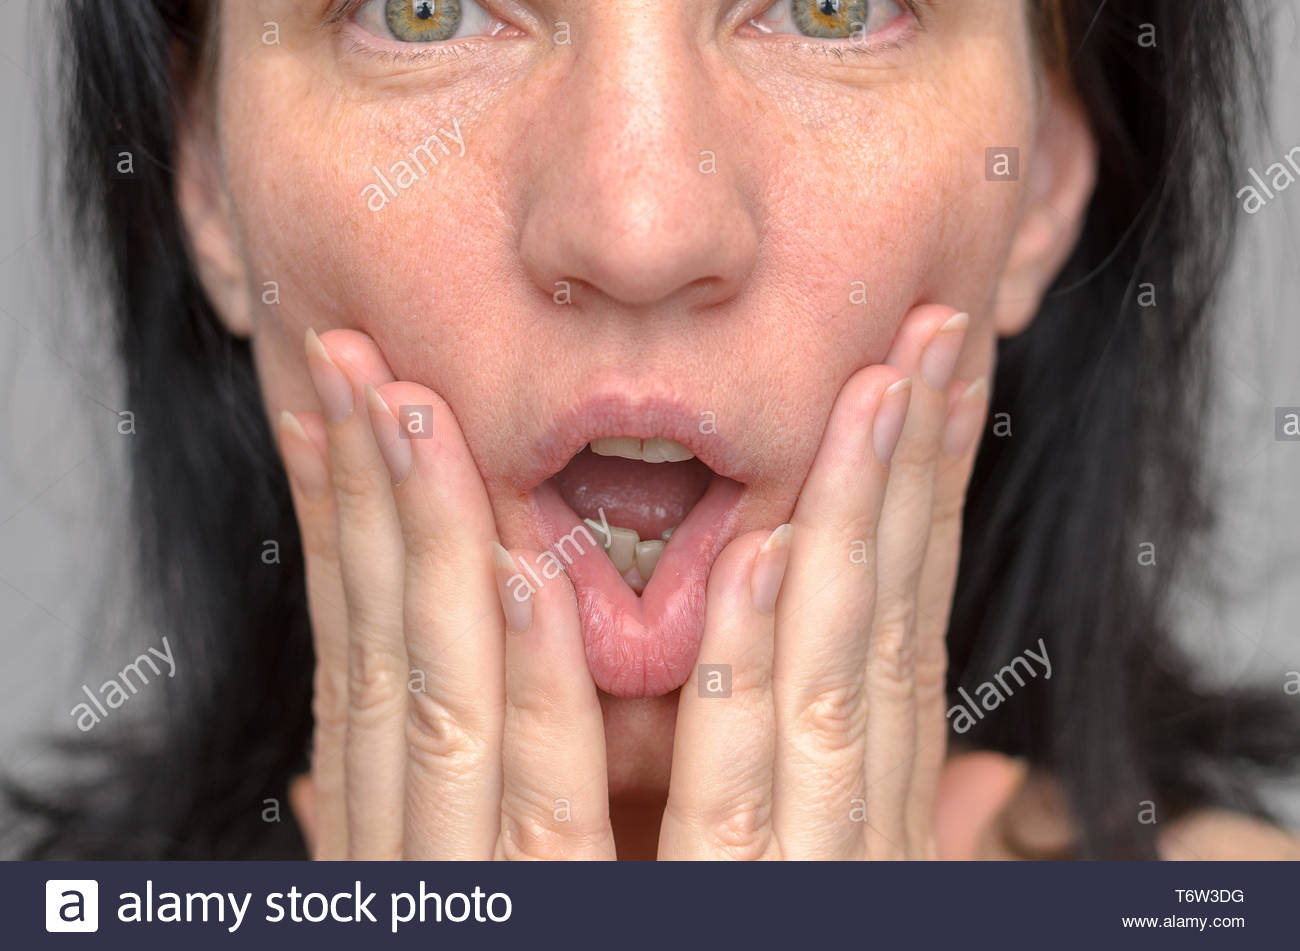 Woman squashing her face with her hands - Stock Image